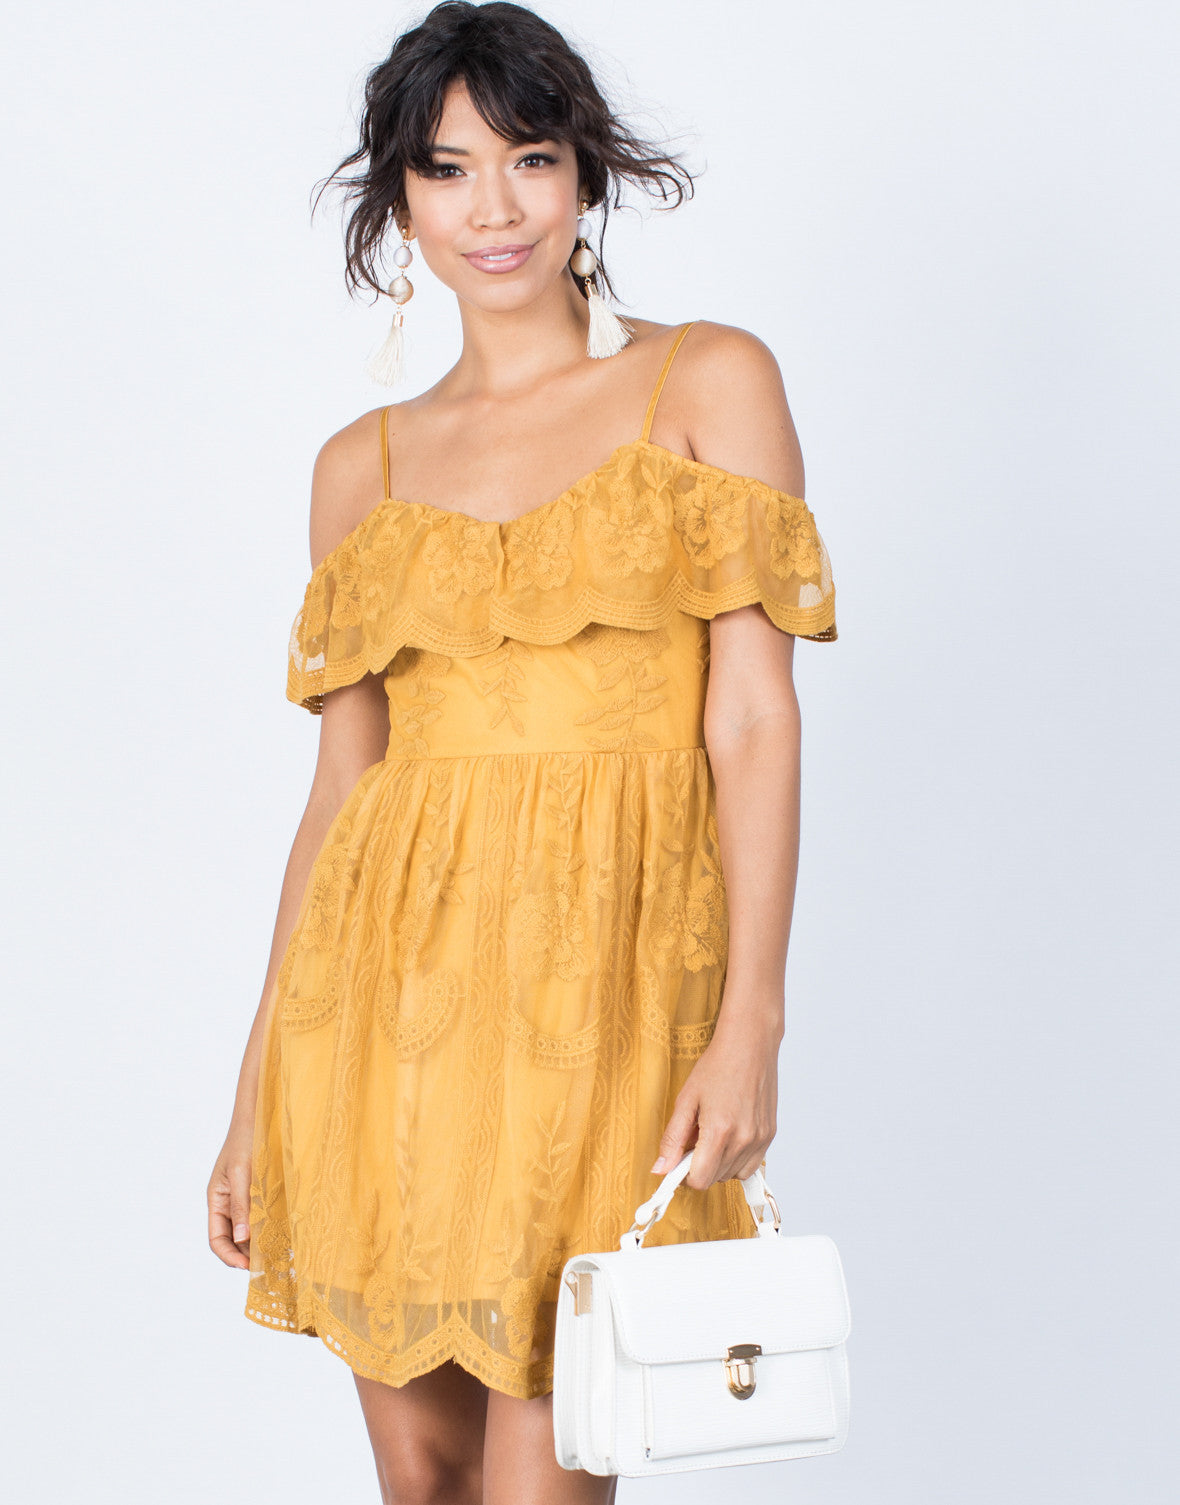 Mustard Delightful Crochet Dress - Front View